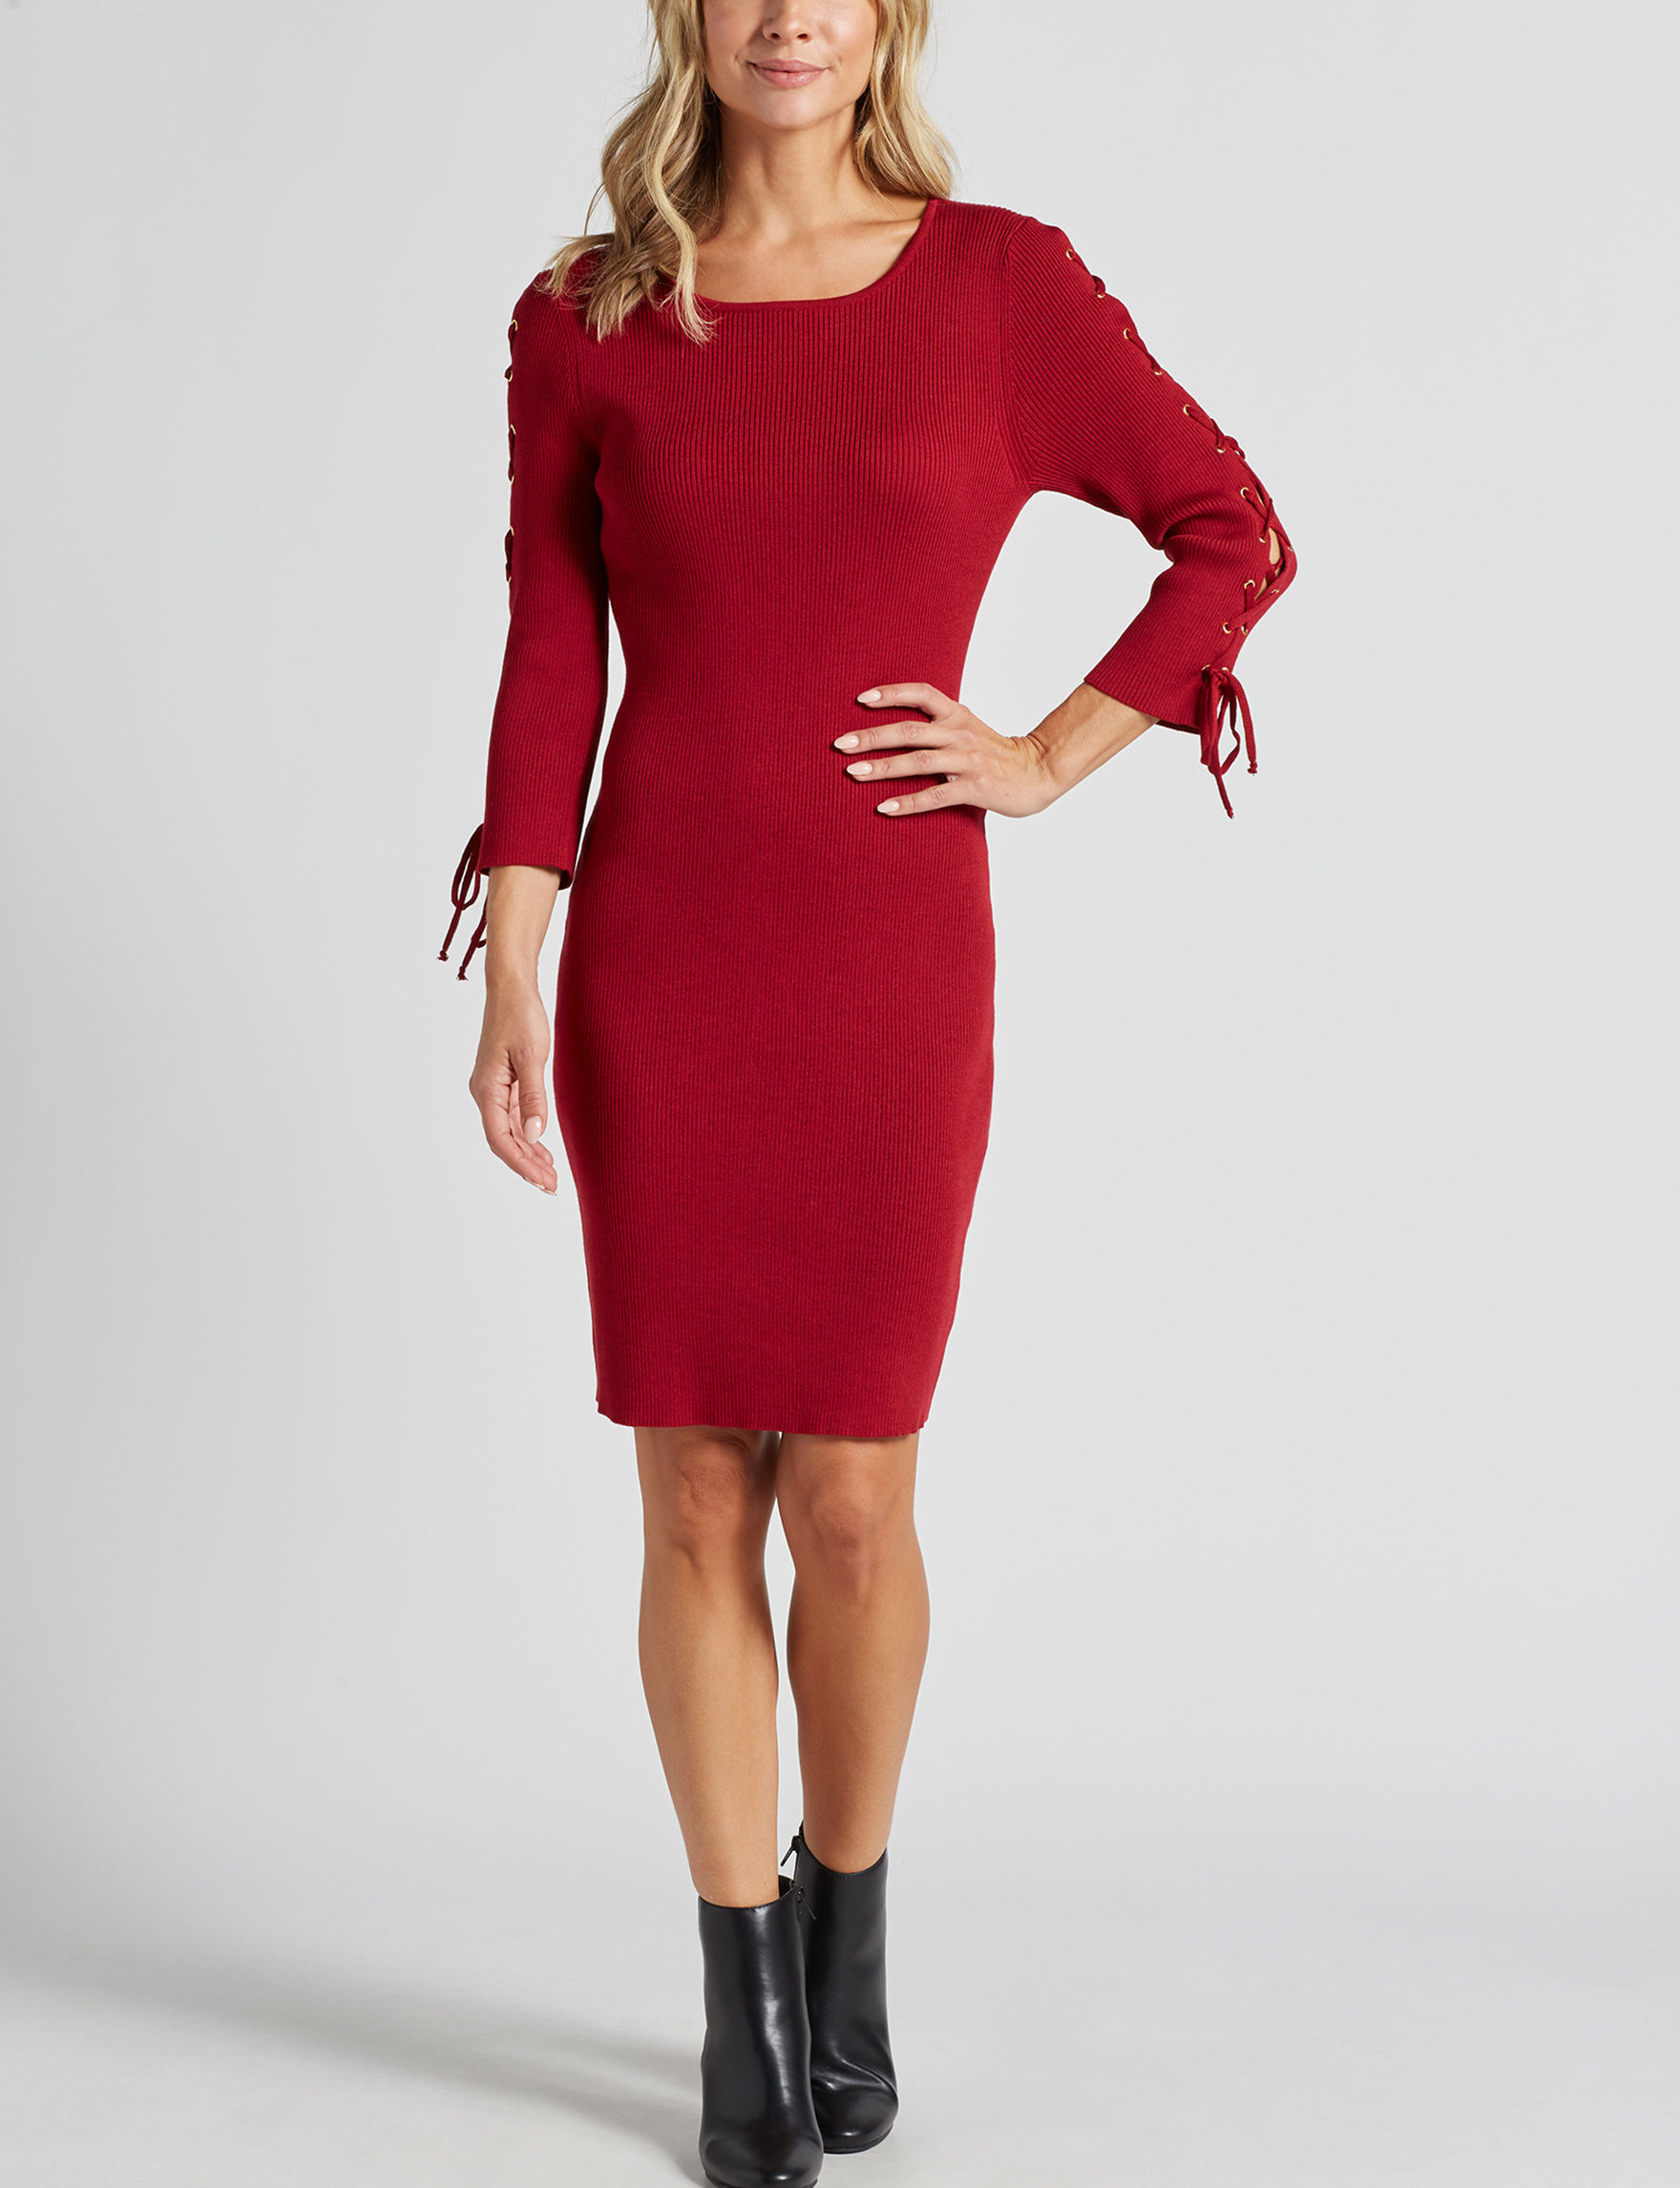 Nina Leonard Red Cocktail & Party Everyday & Casual Sheath Dresses